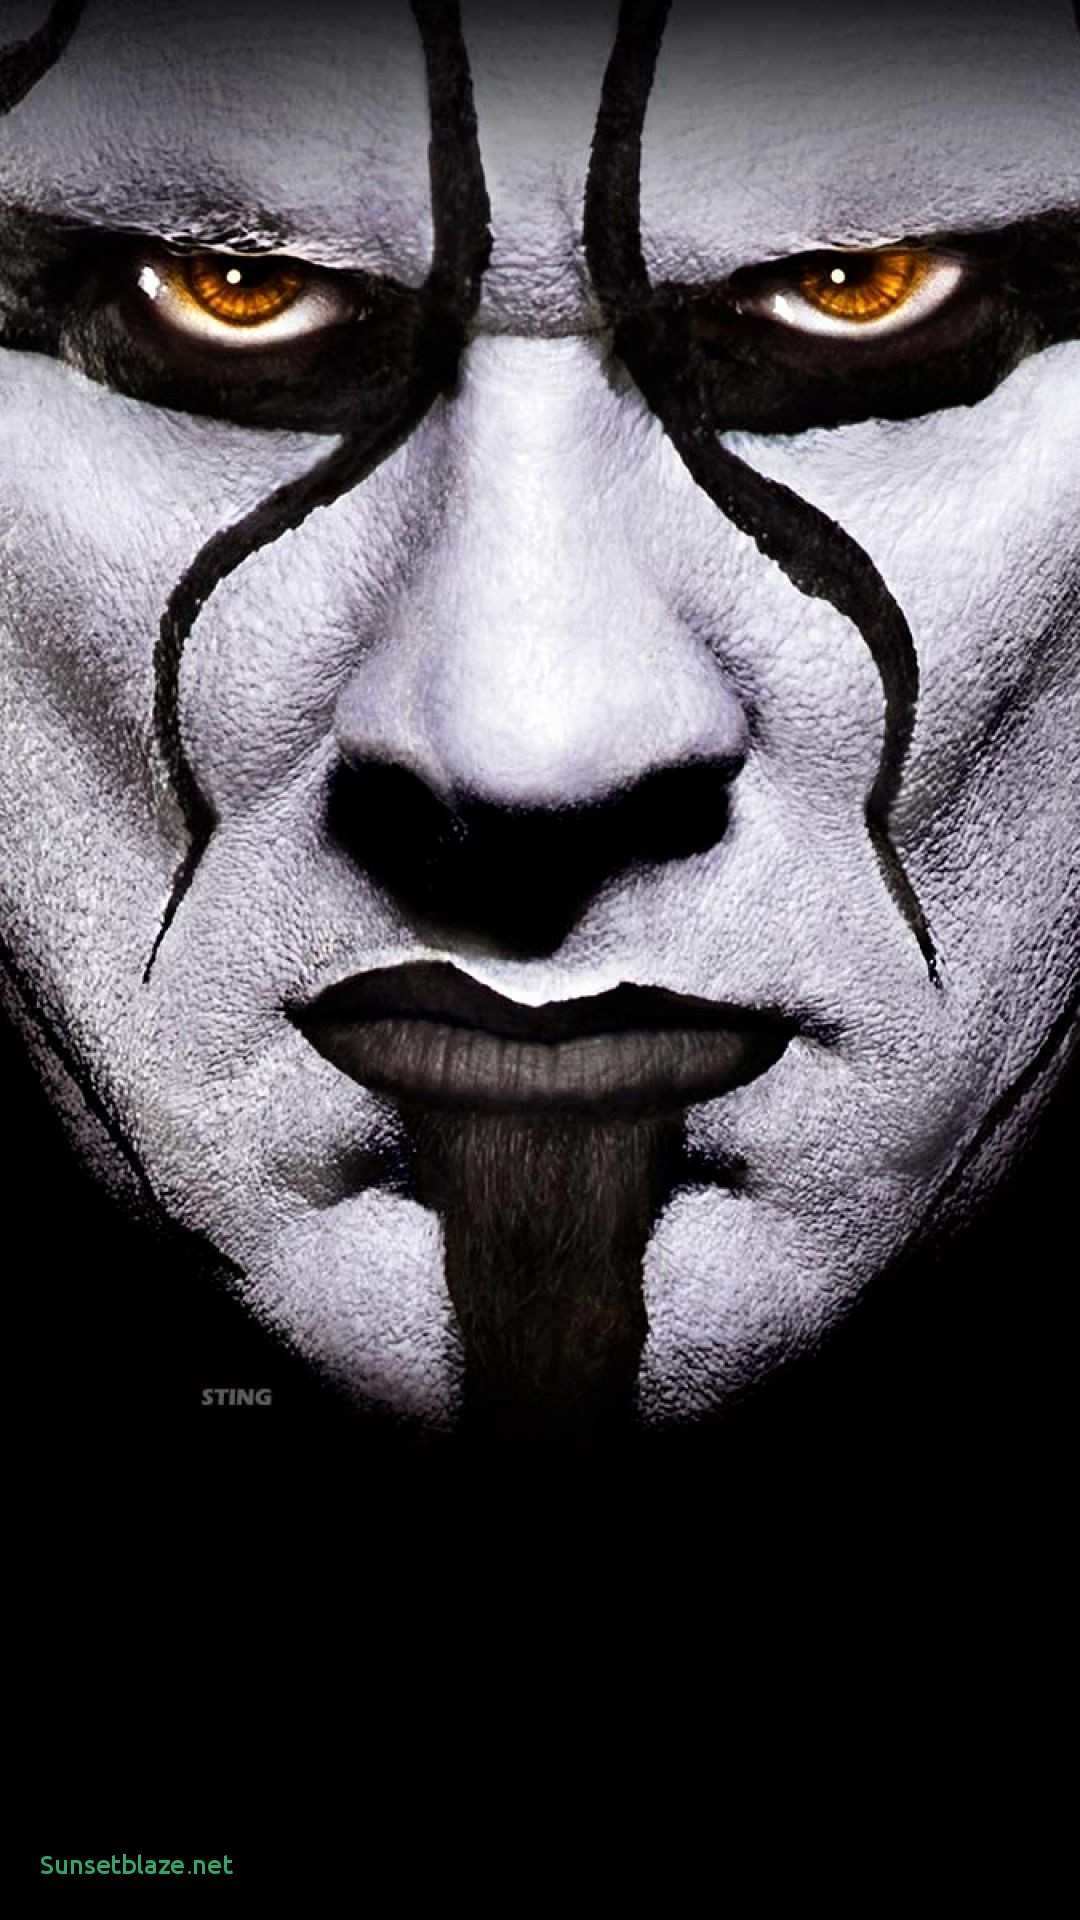 Amazing Wallpapers Awesome Iphone Wallpapers Hd Car - Wwe Sting Wallpaper Iphone - HD Wallpaper